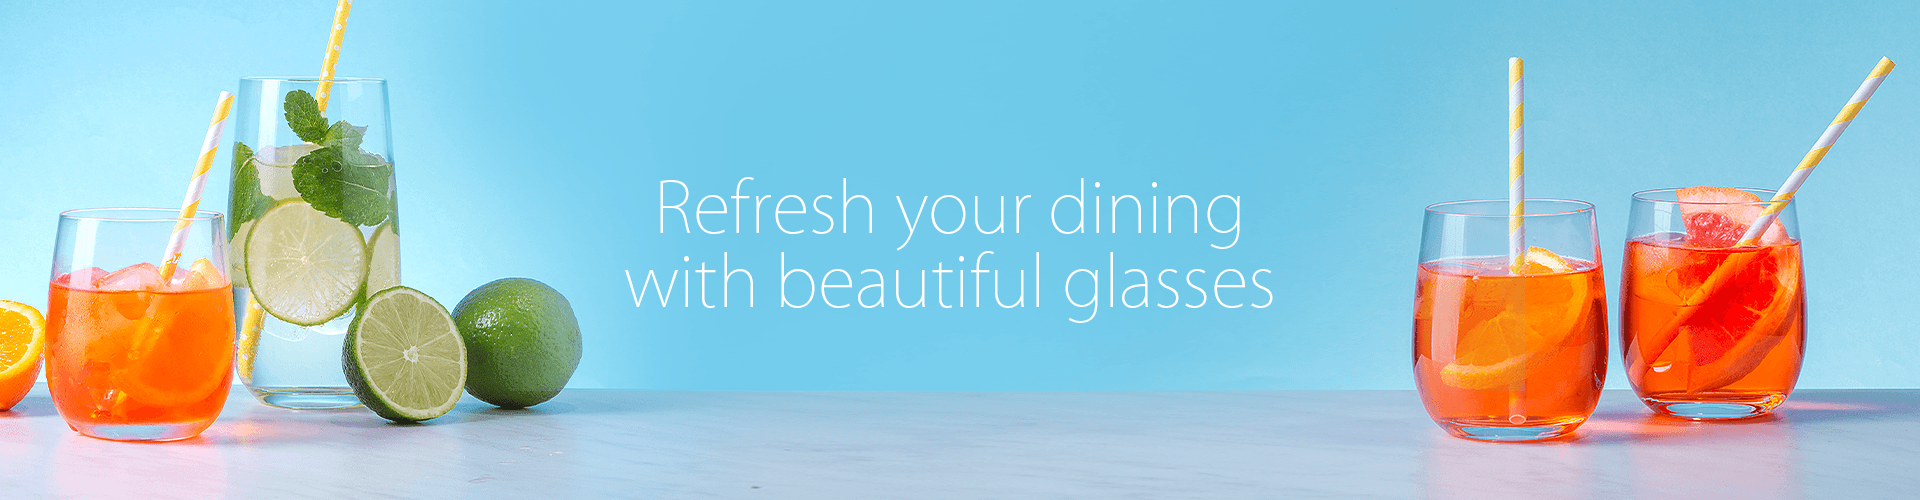 Discover discounts on glass